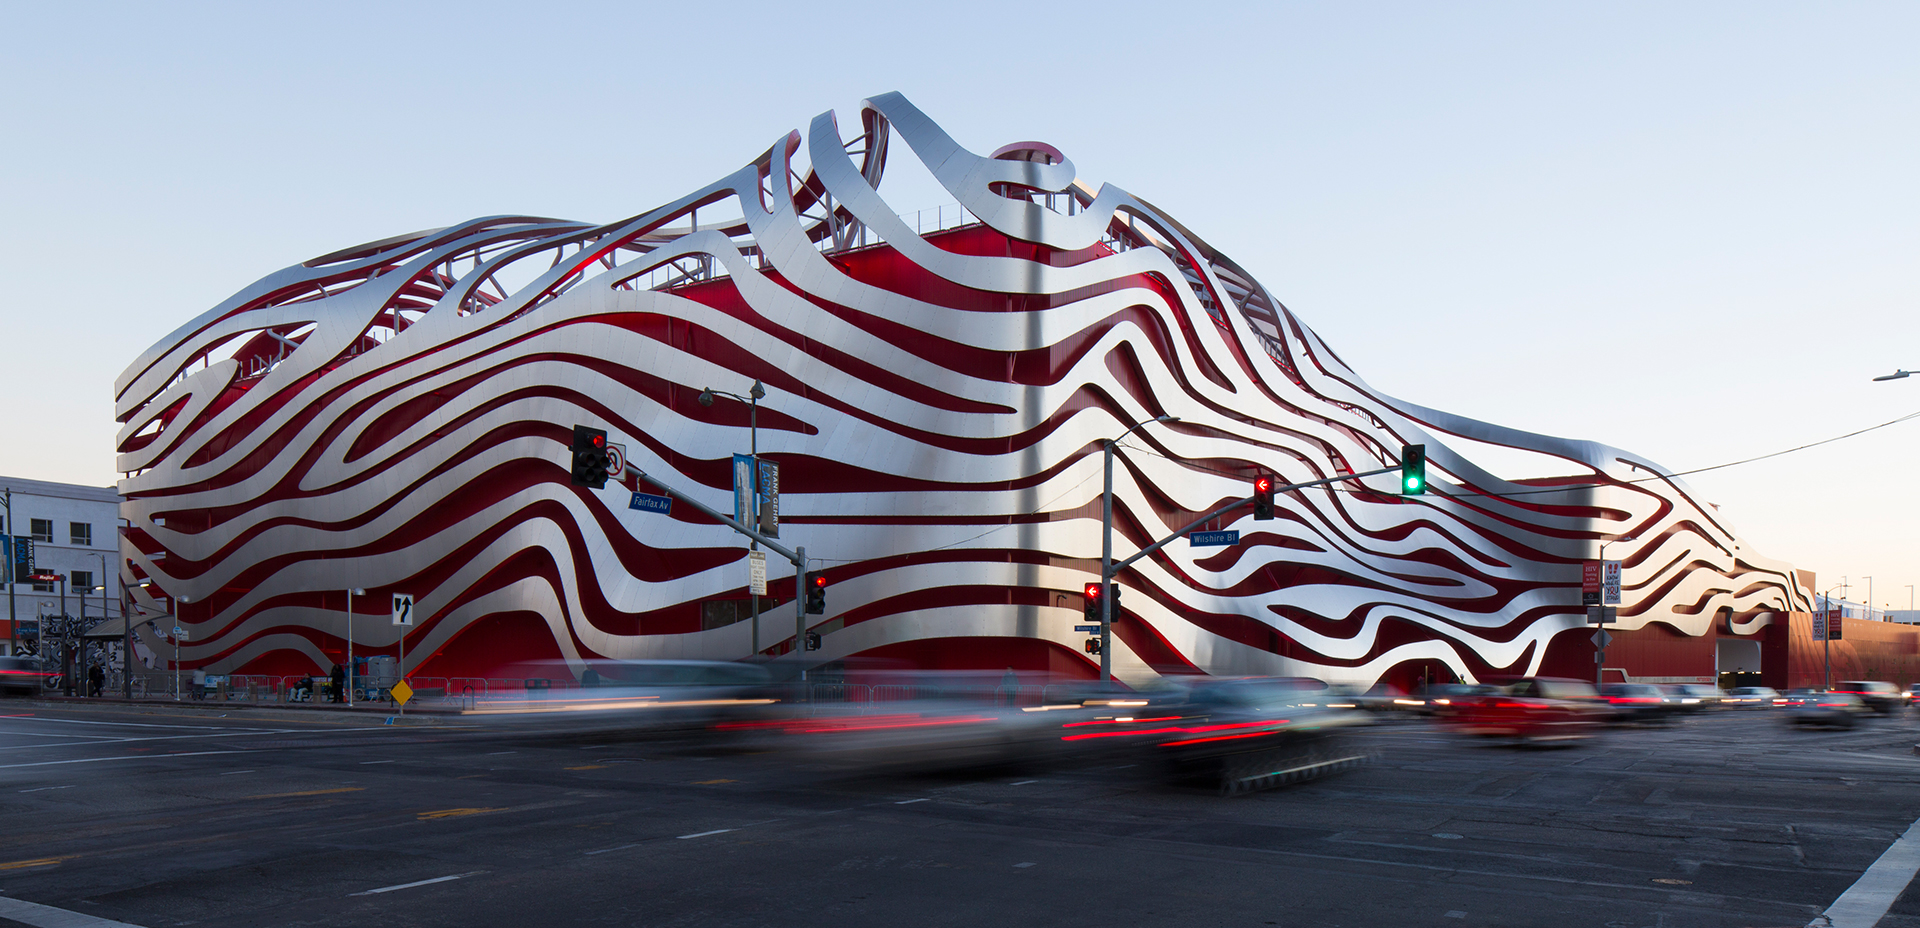 Petersen Automotive Museum - photo by David Zaitz